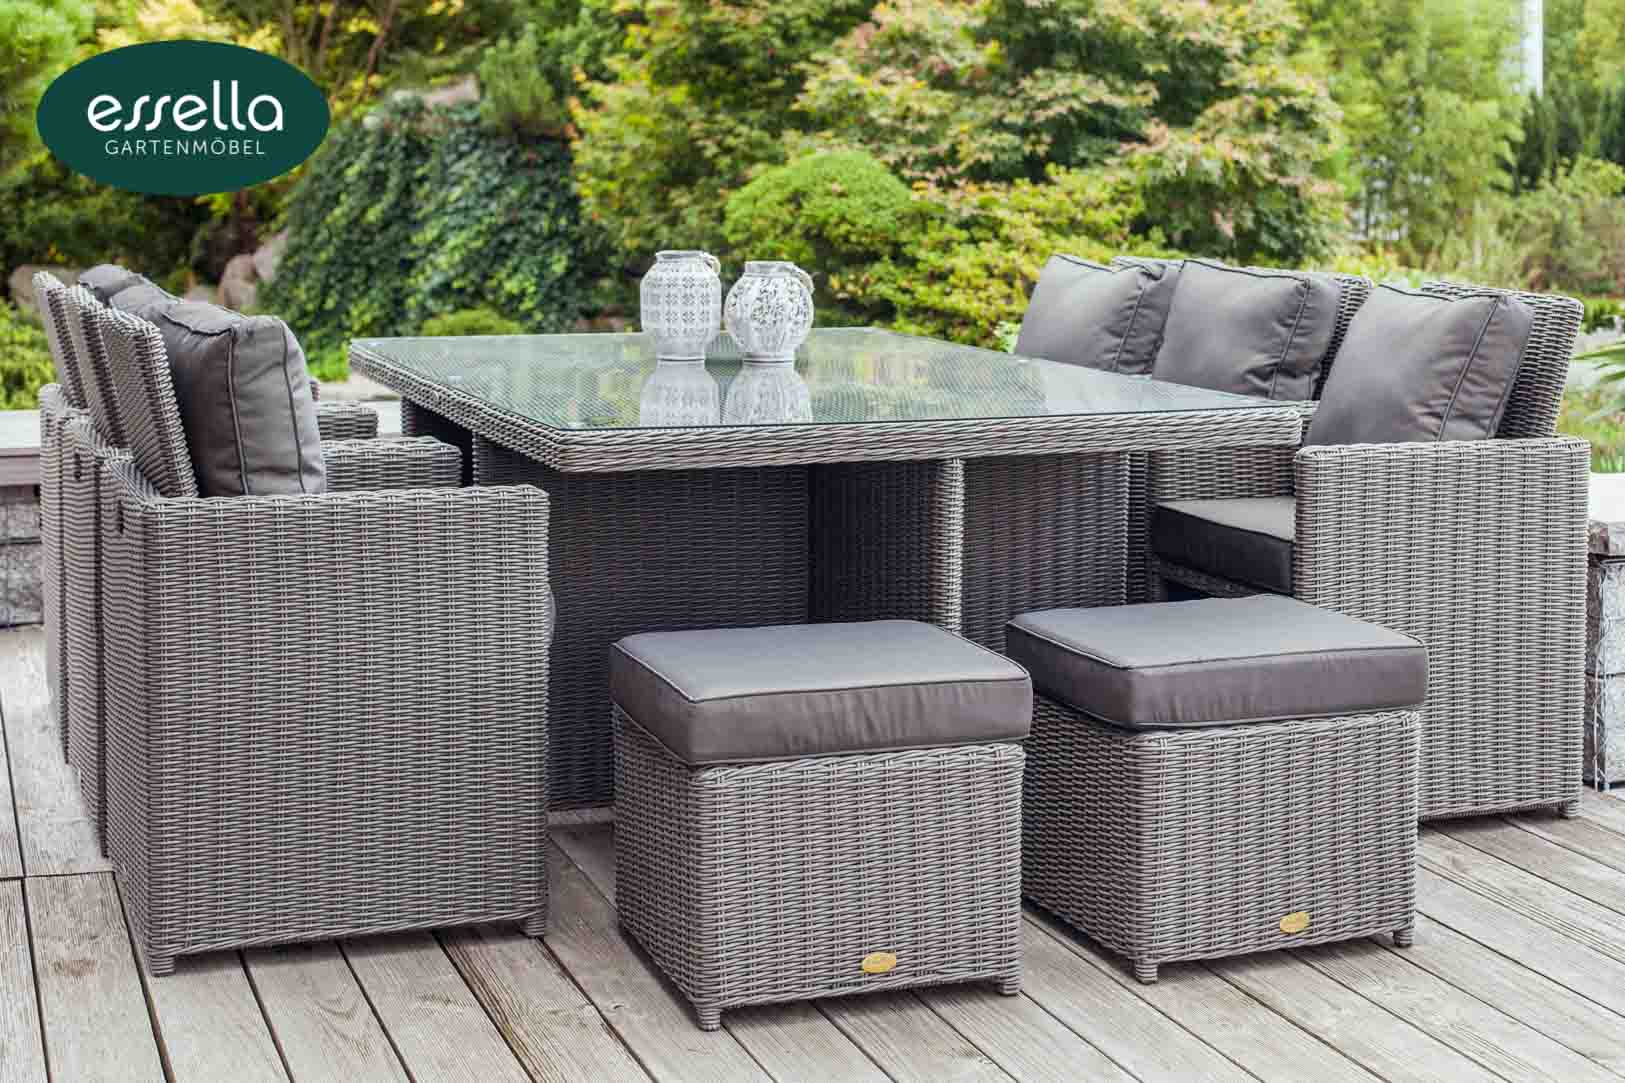 essella polyrattan sitzgruppe vienna 6 personen rundgeflecht. Black Bedroom Furniture Sets. Home Design Ideas